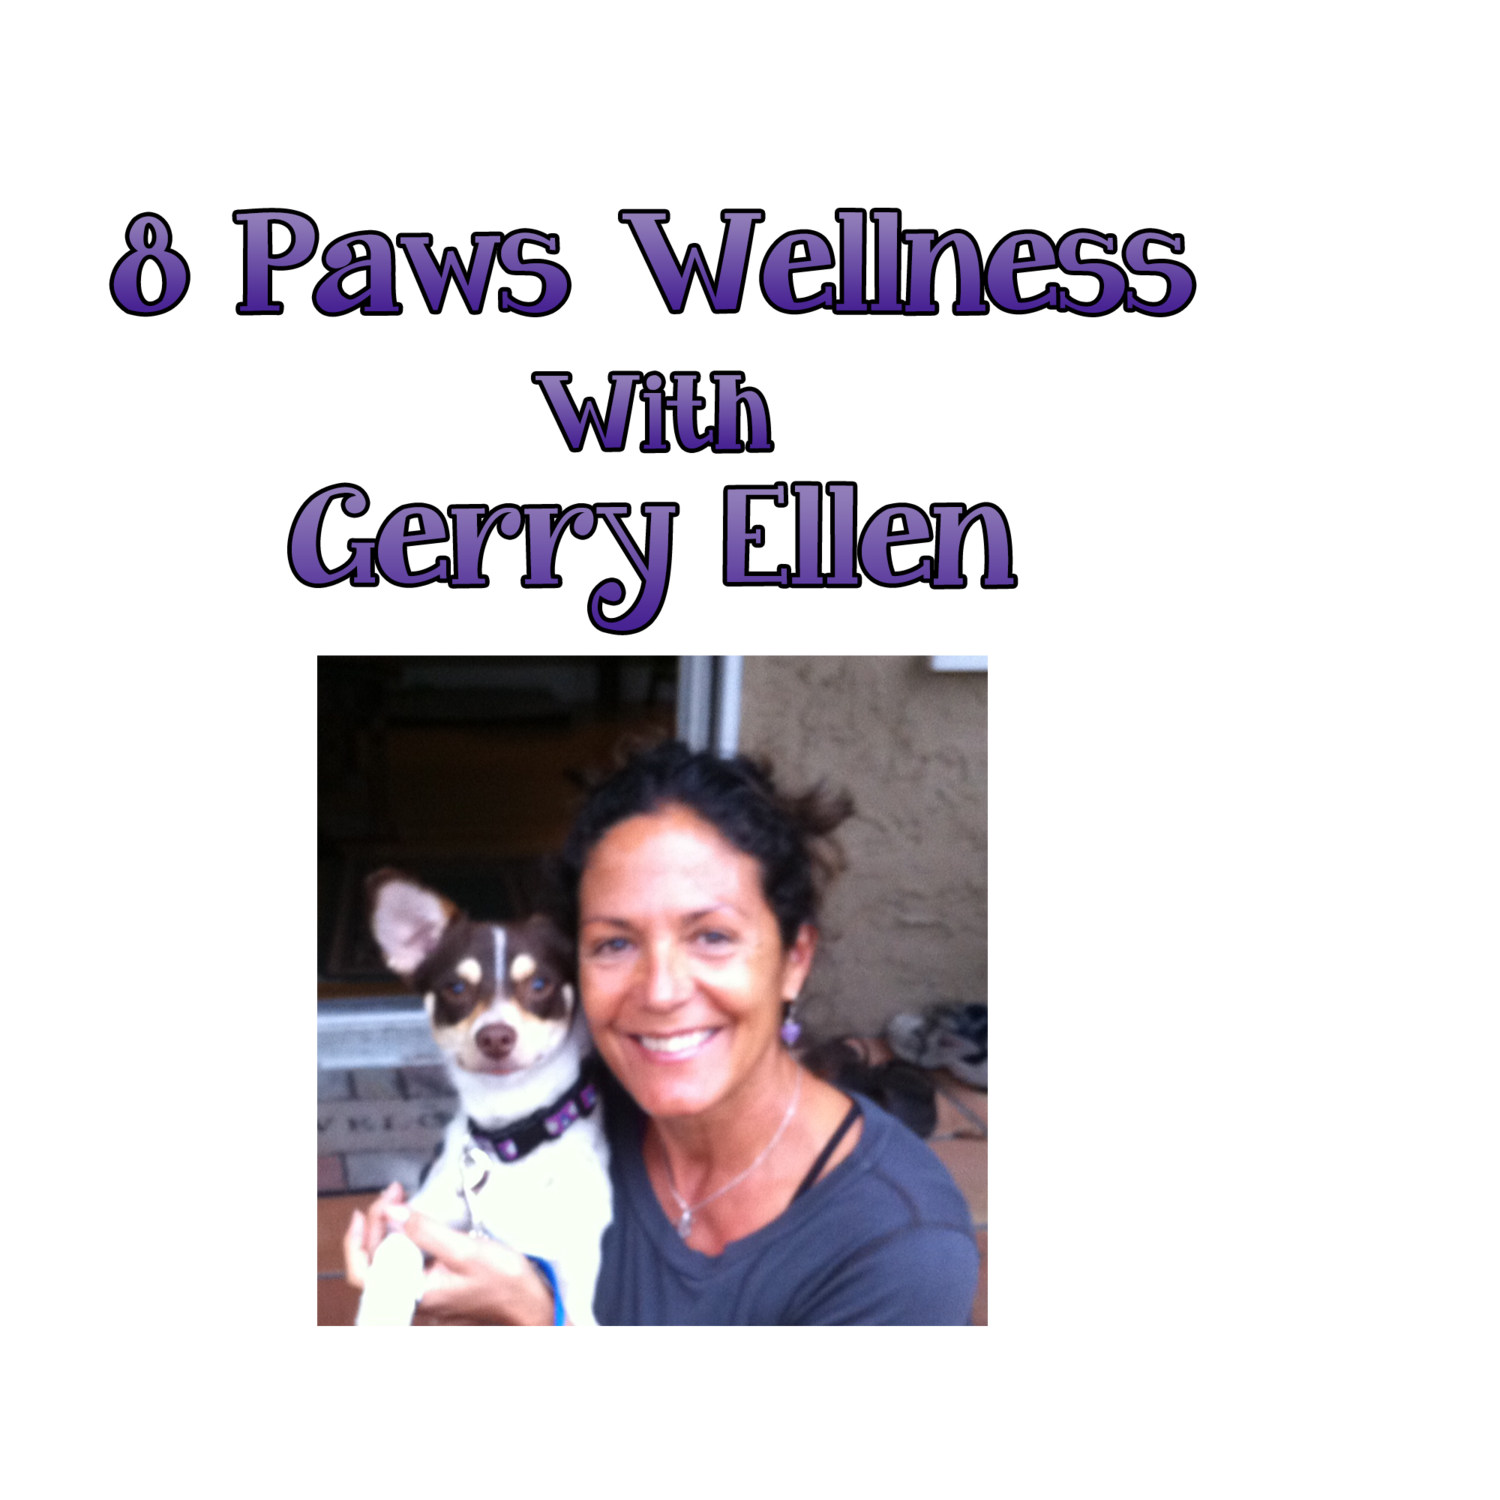 8 Paws Wellness with Gerry Ellen